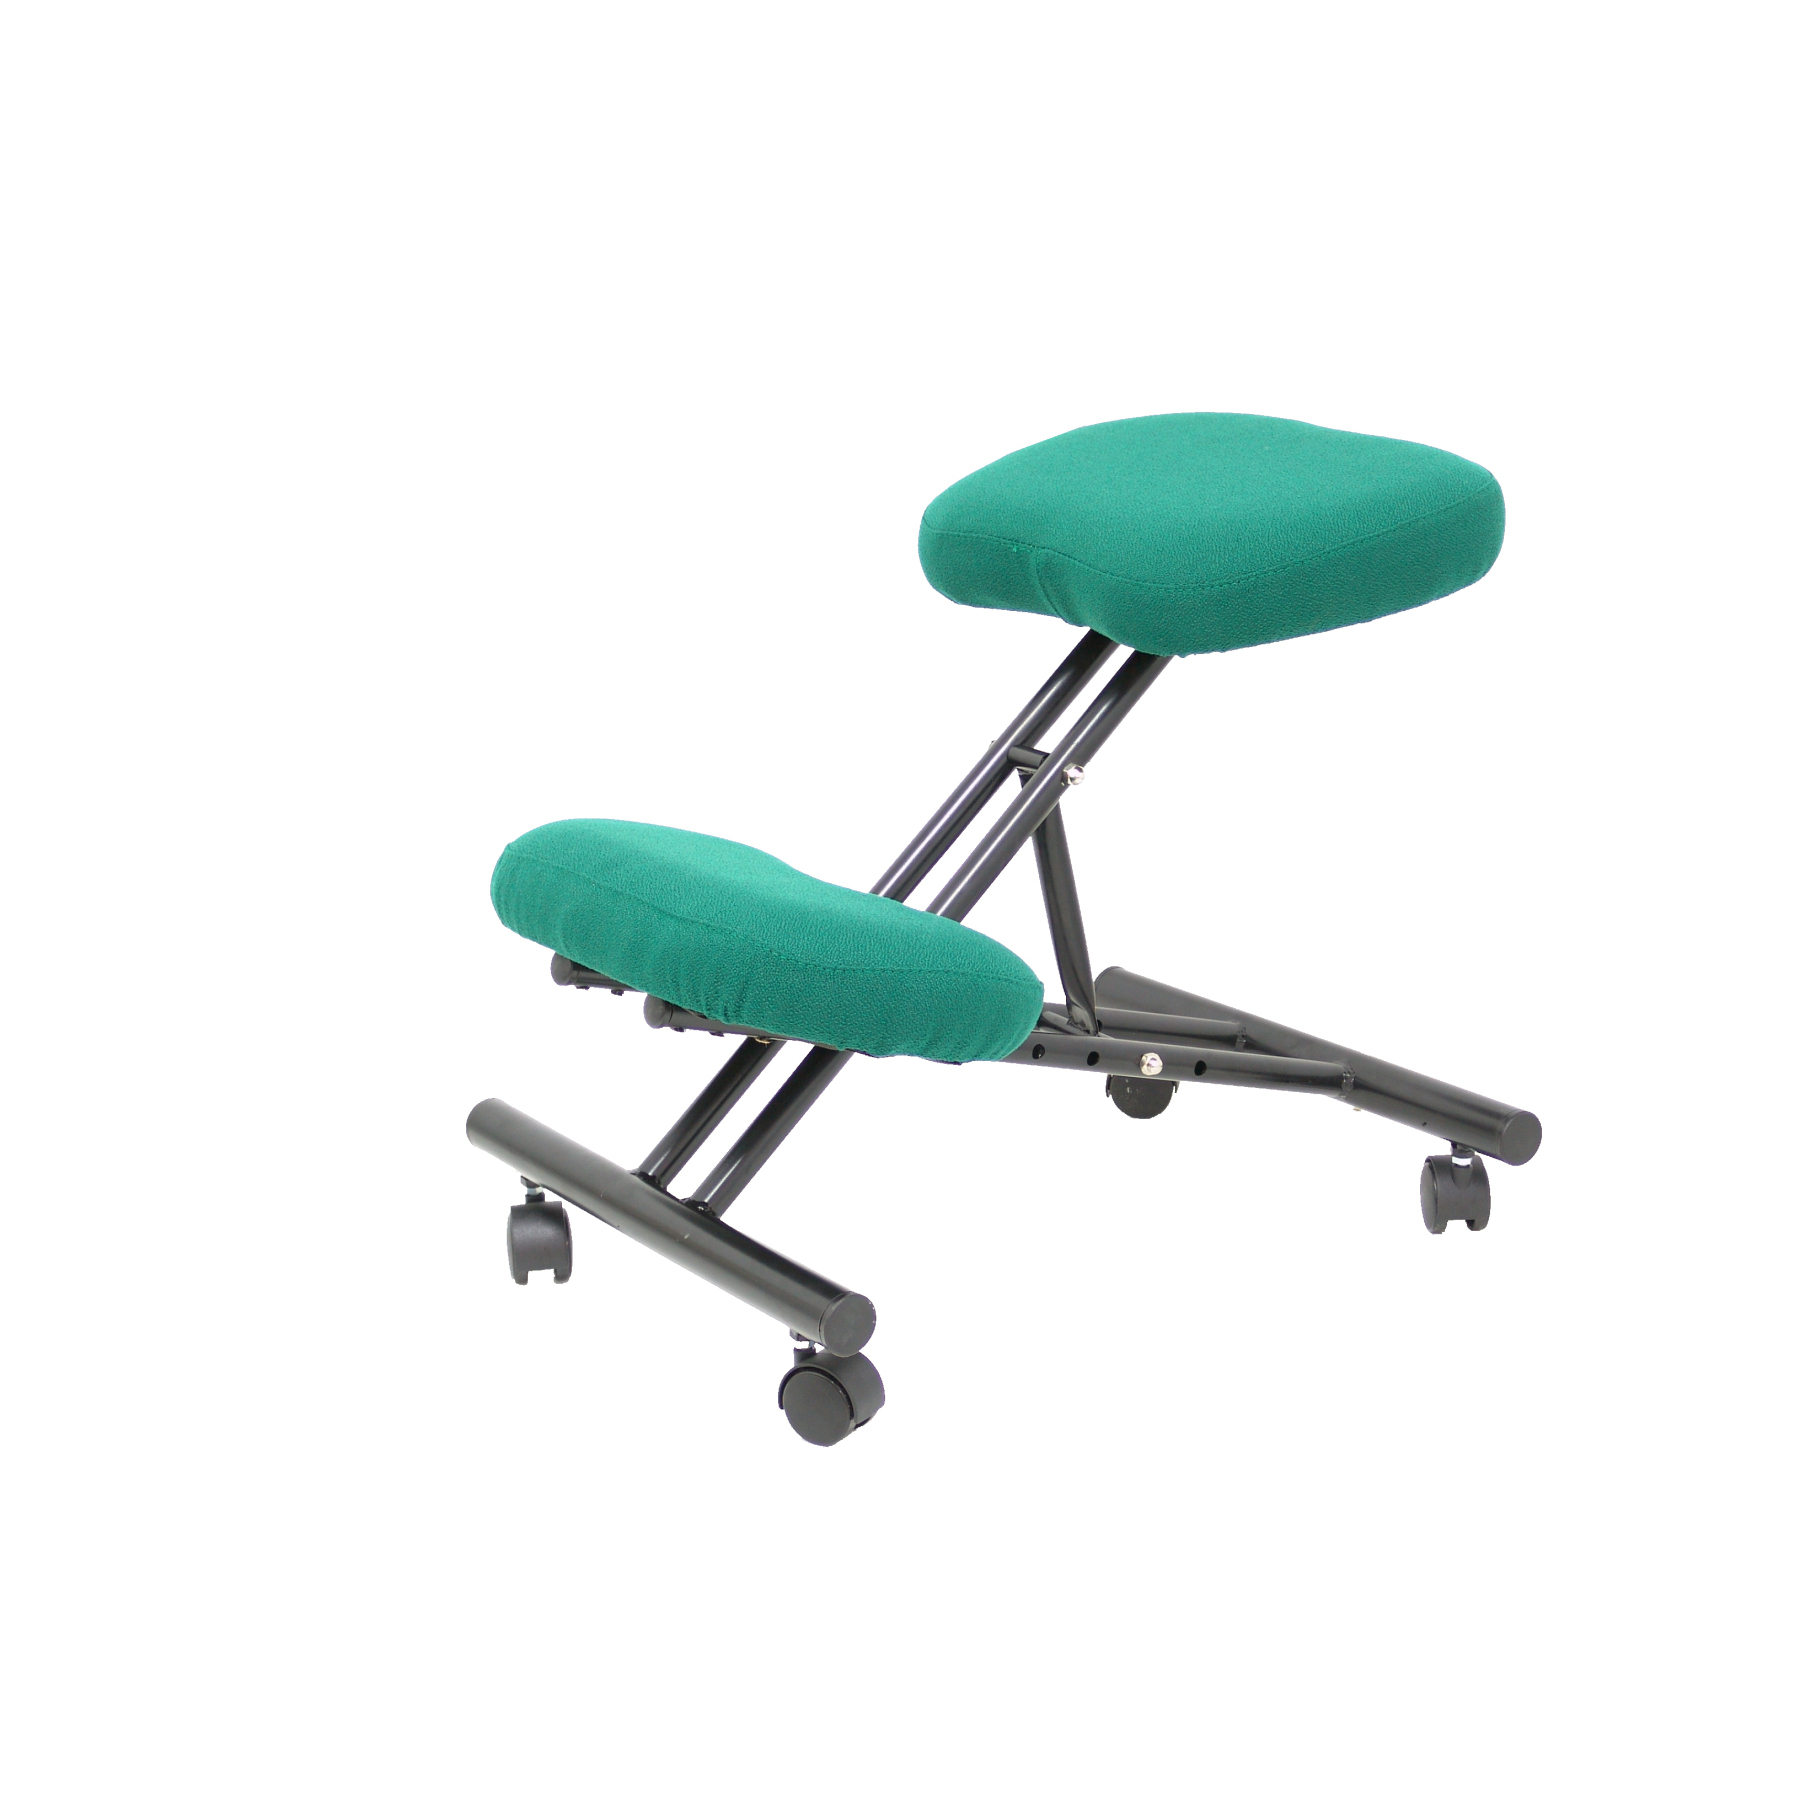 Office's Stool Ergonomic Fixed, Dimmable In Various Positions And With Wheels Up Seat Upholstered In BALI Tissue Color